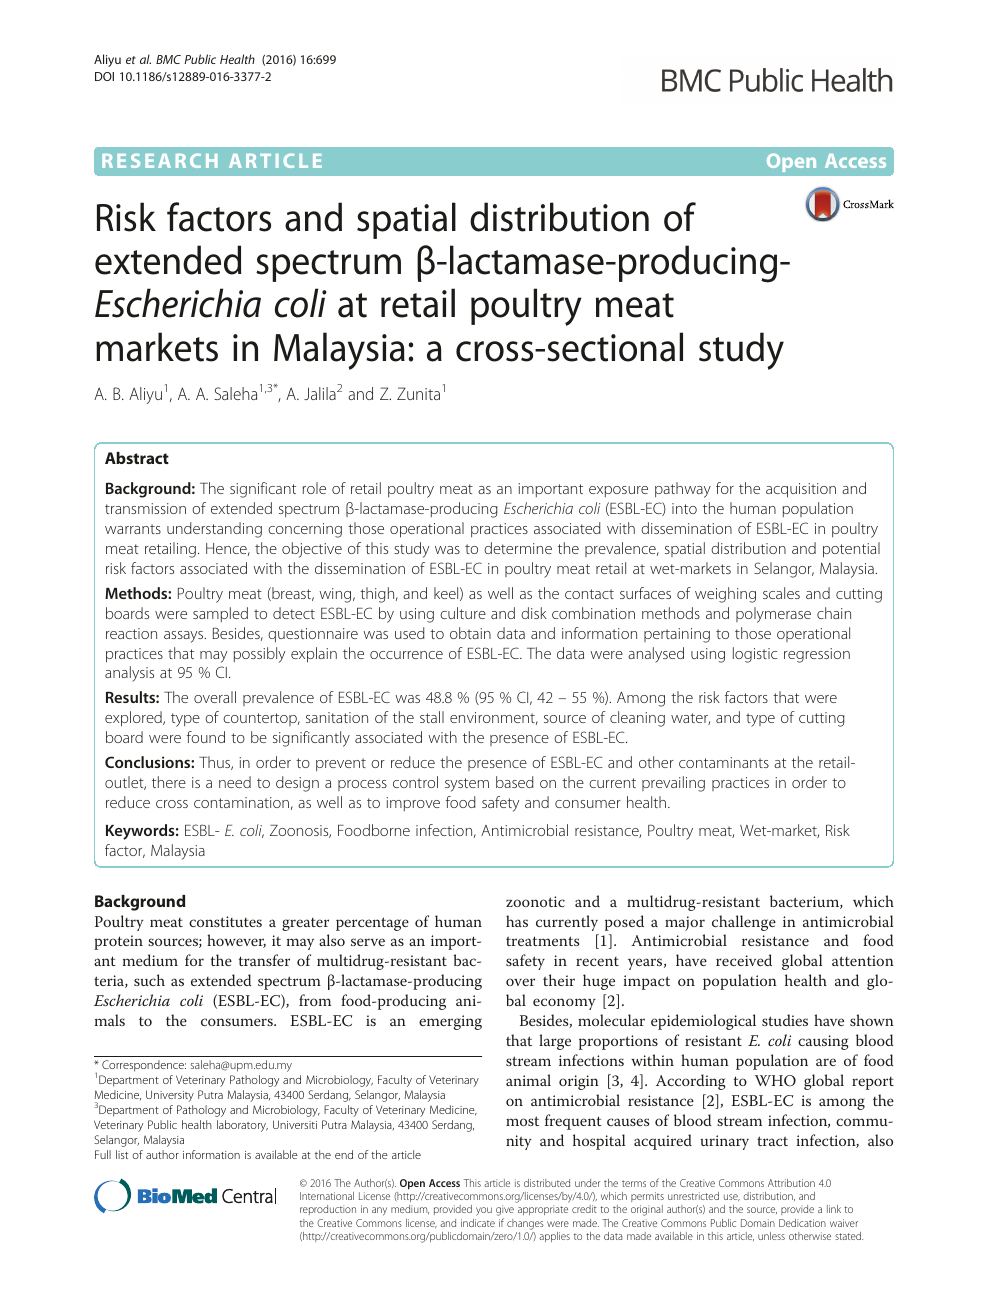 Risk factors and spatial distribution of extended spectrum β